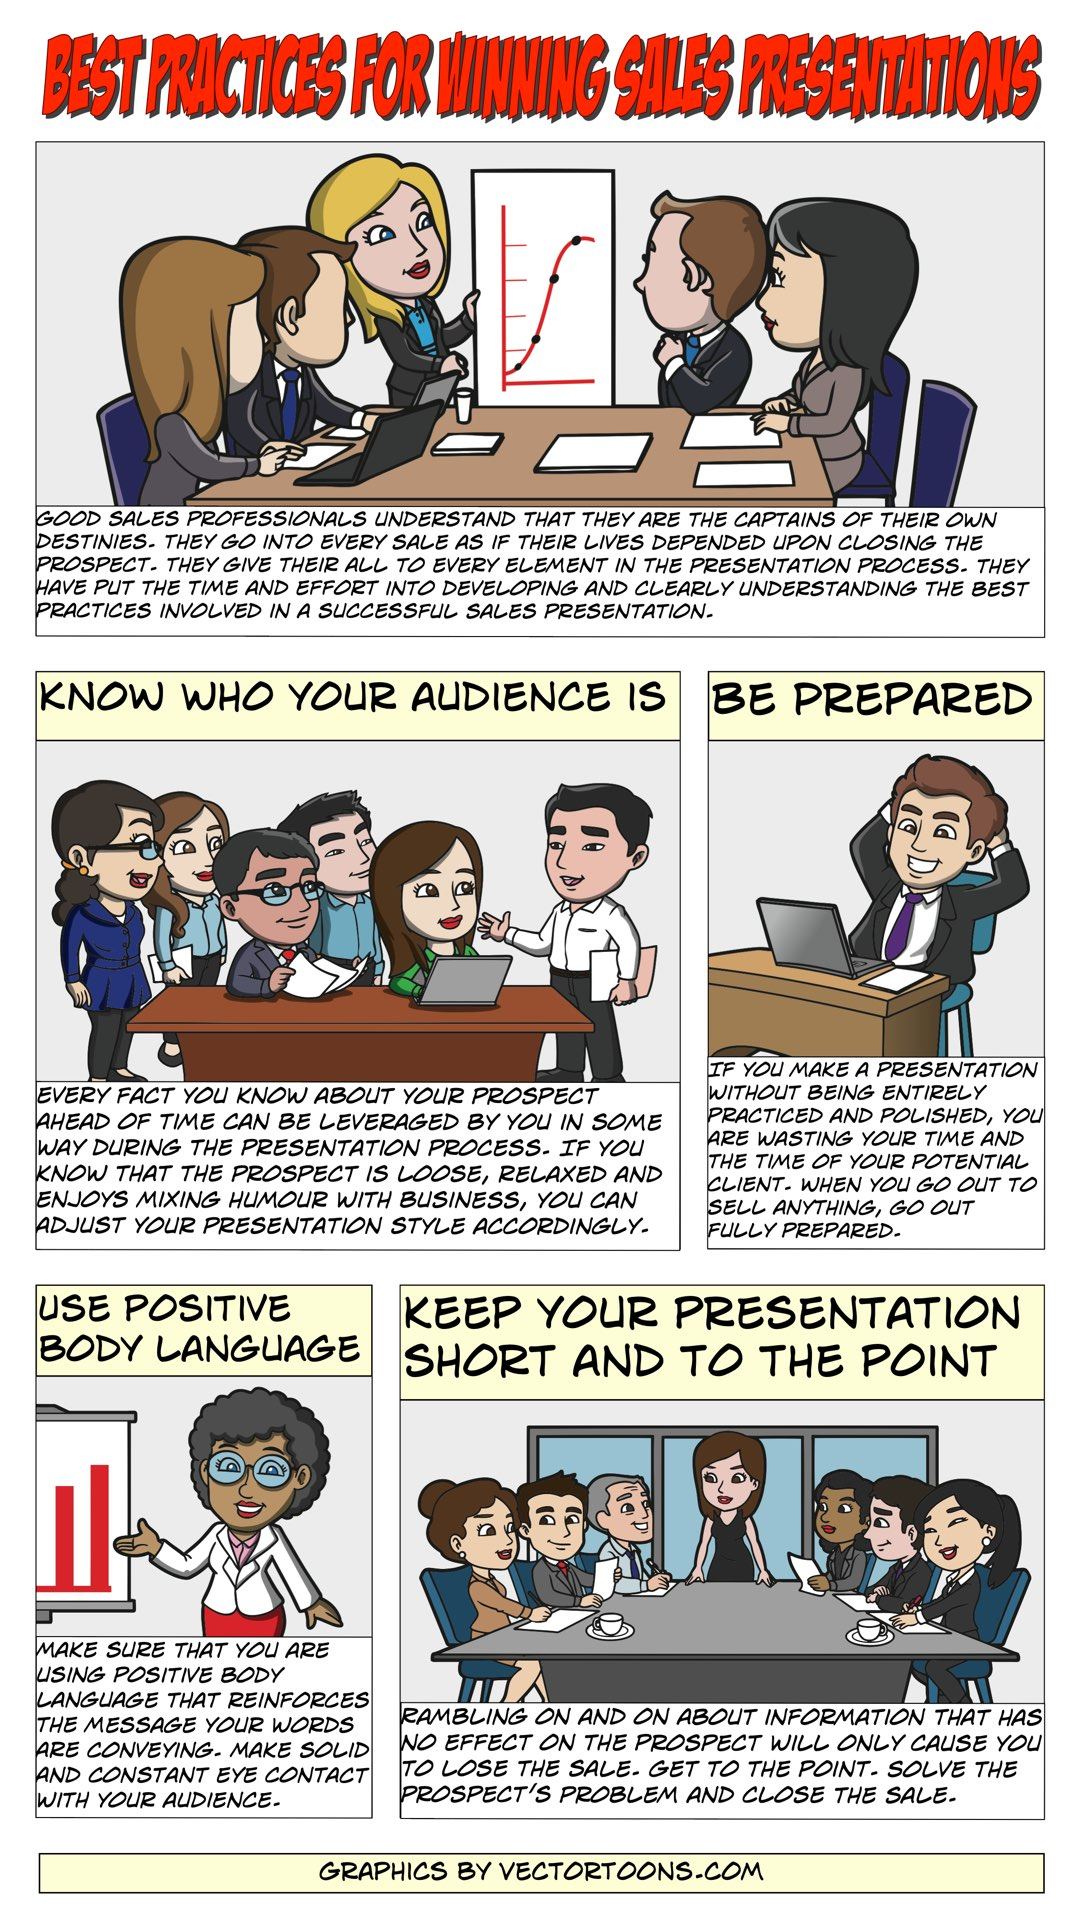 Best Practices For Winning Sales Presentations